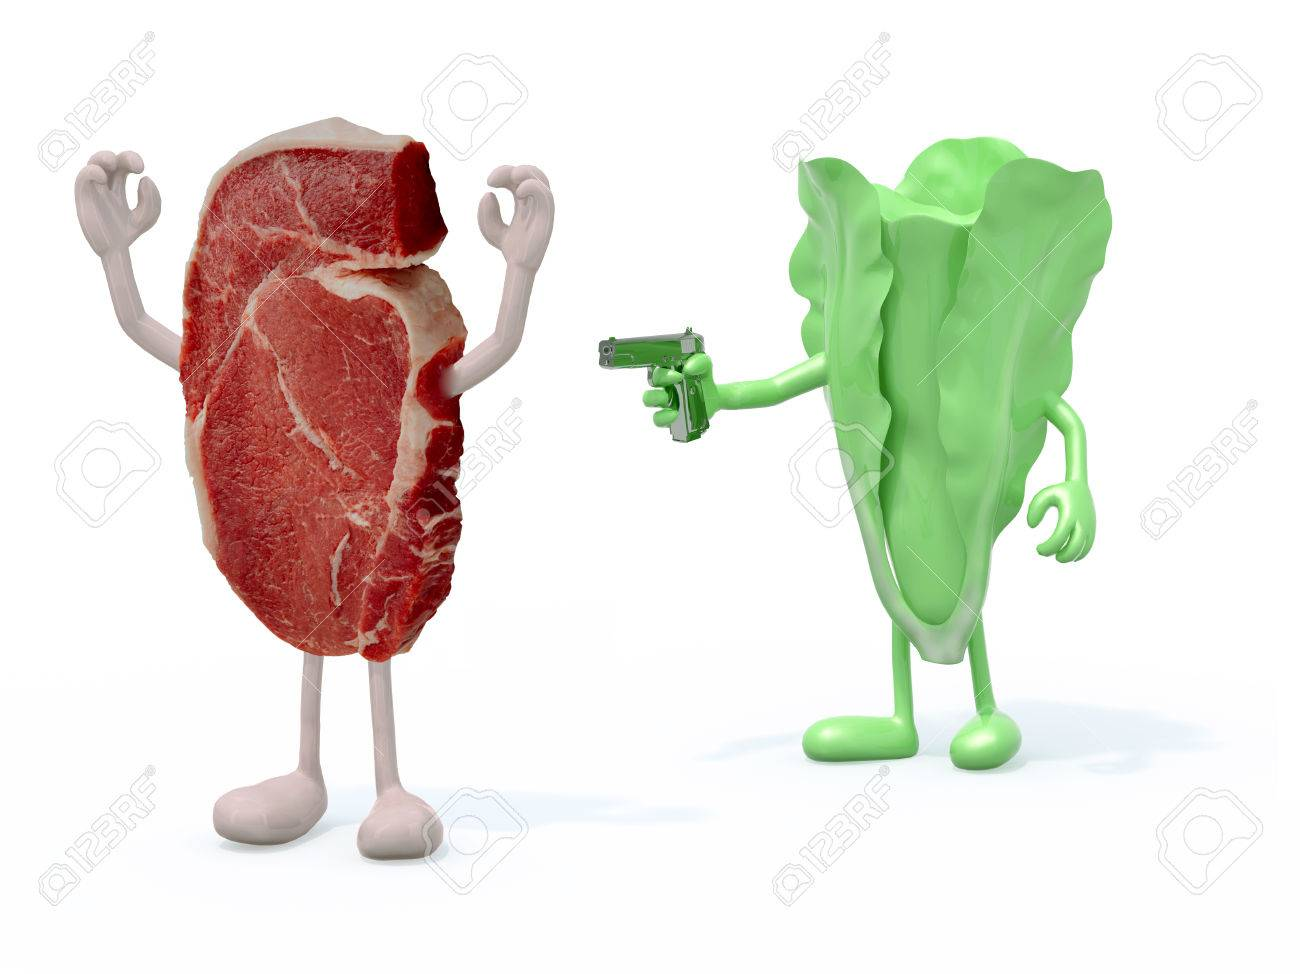 carnivore vs vegan